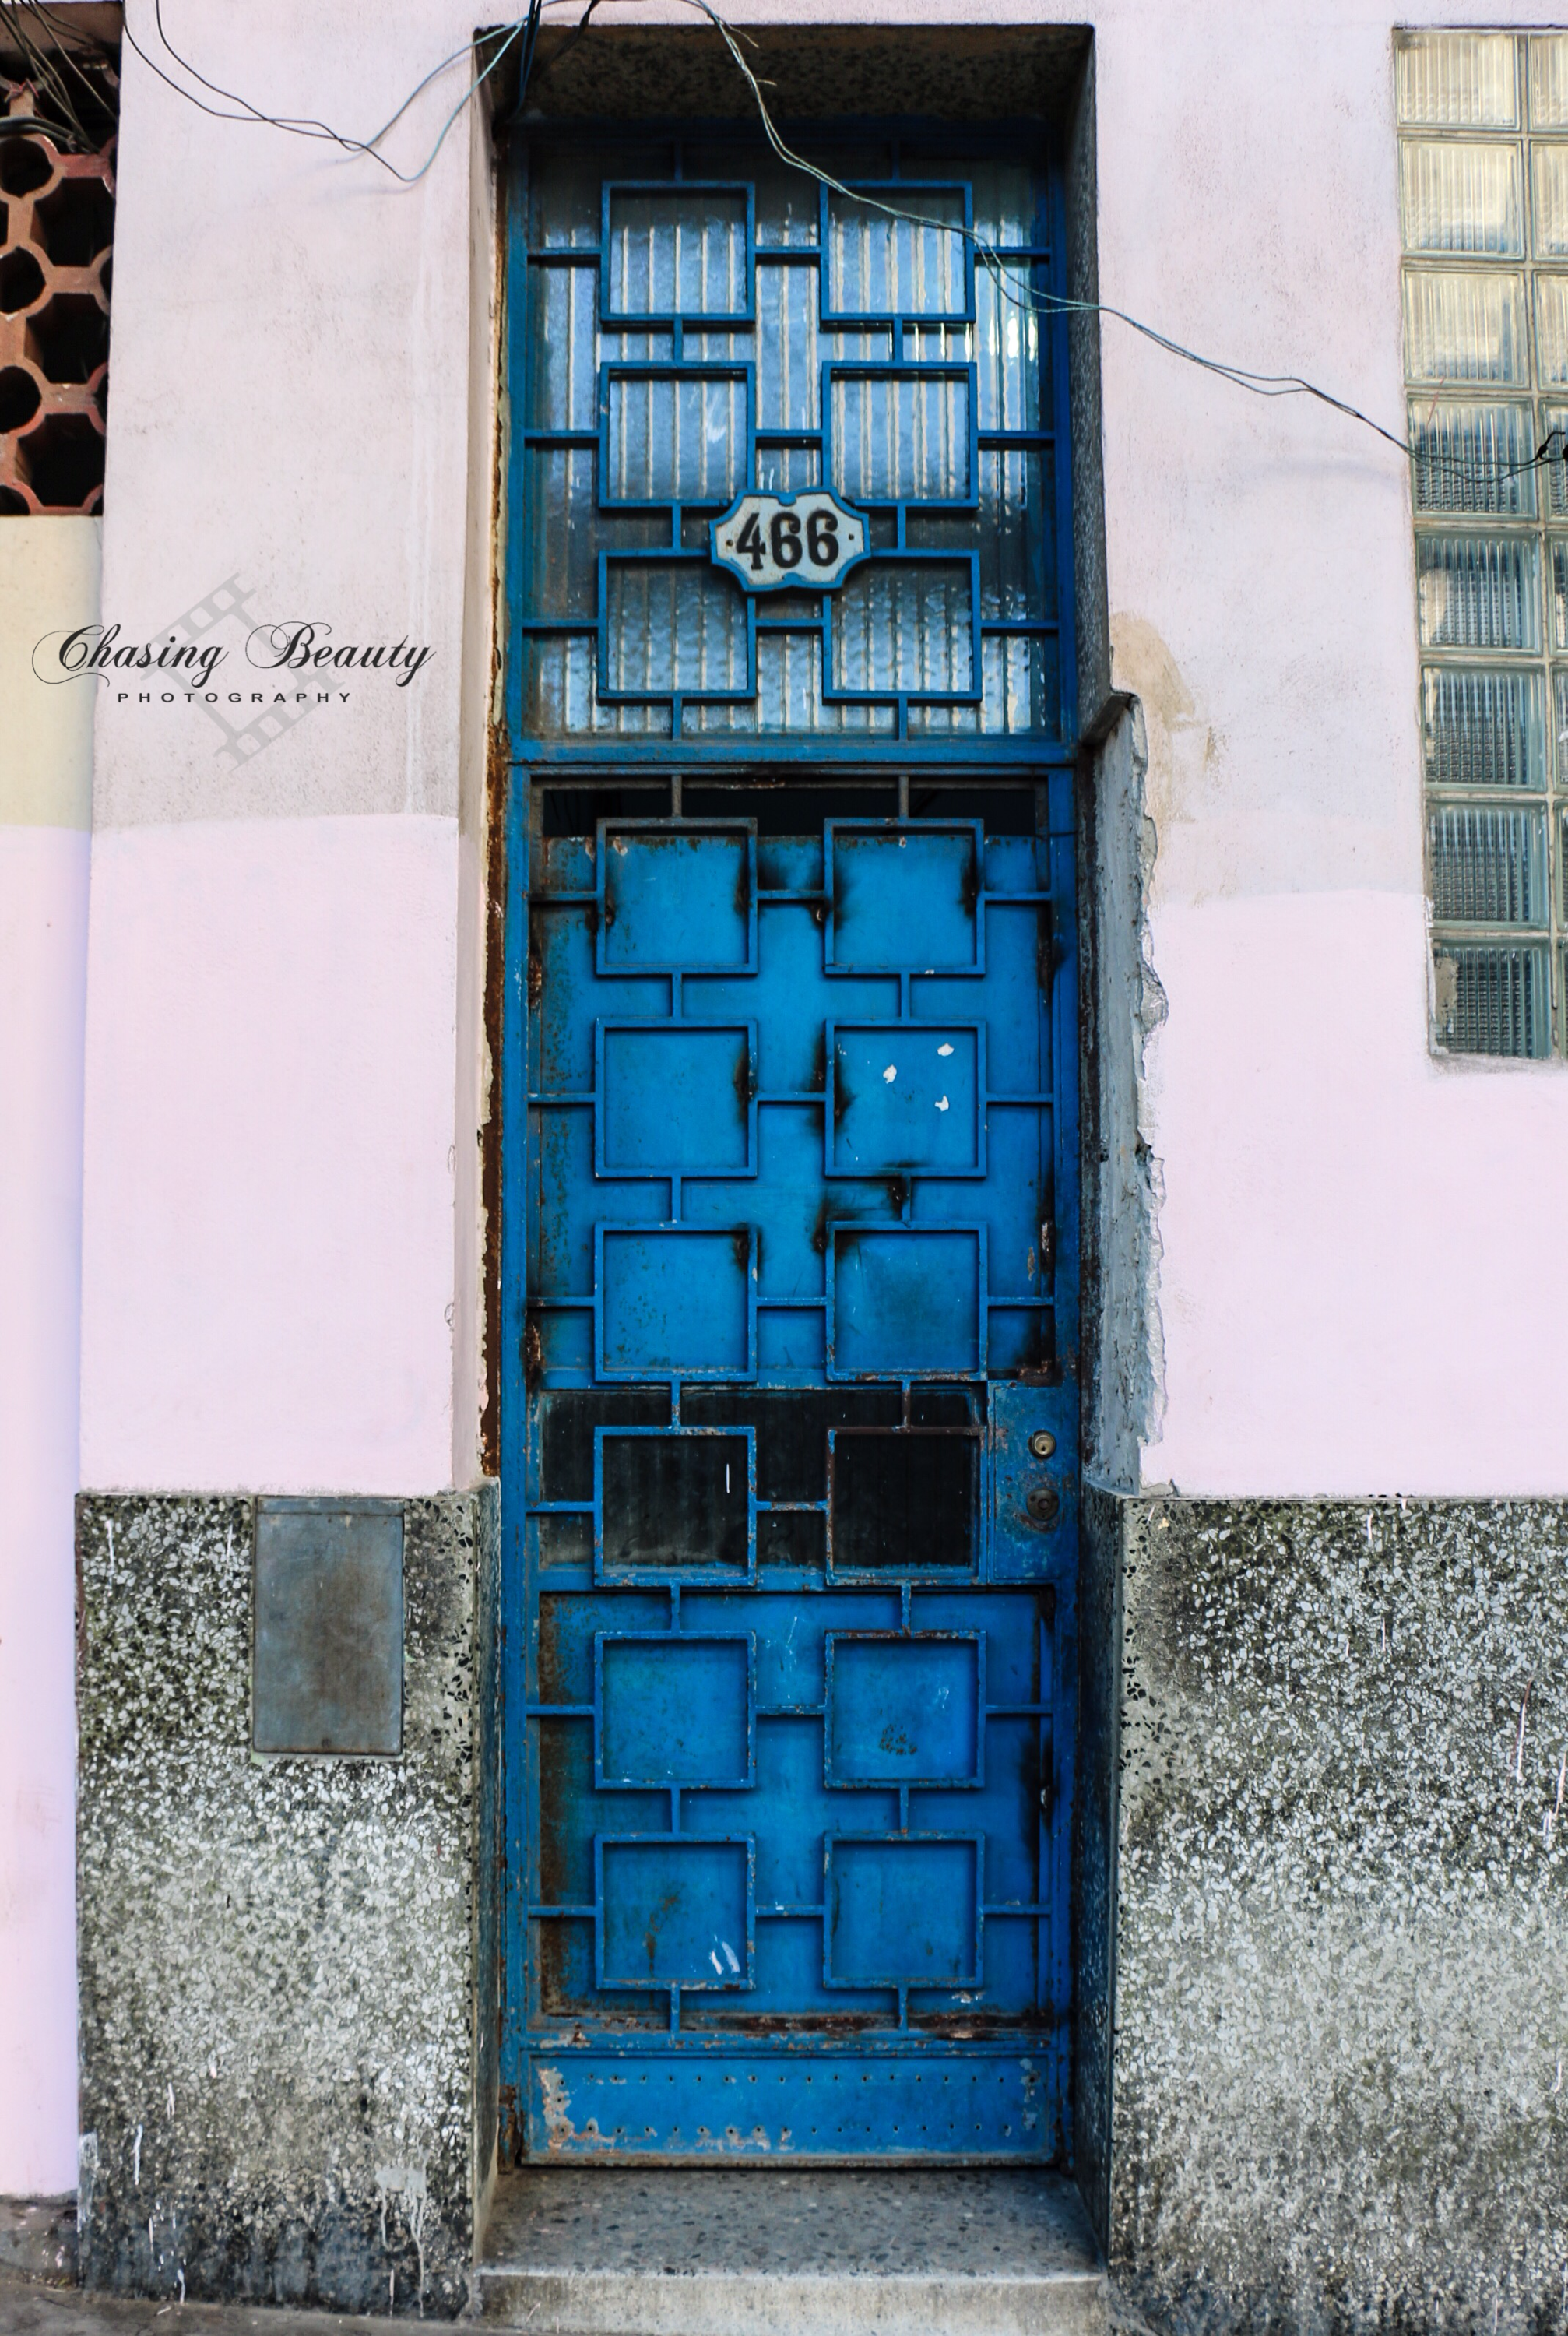 Havana | Chasing Beauty Photography